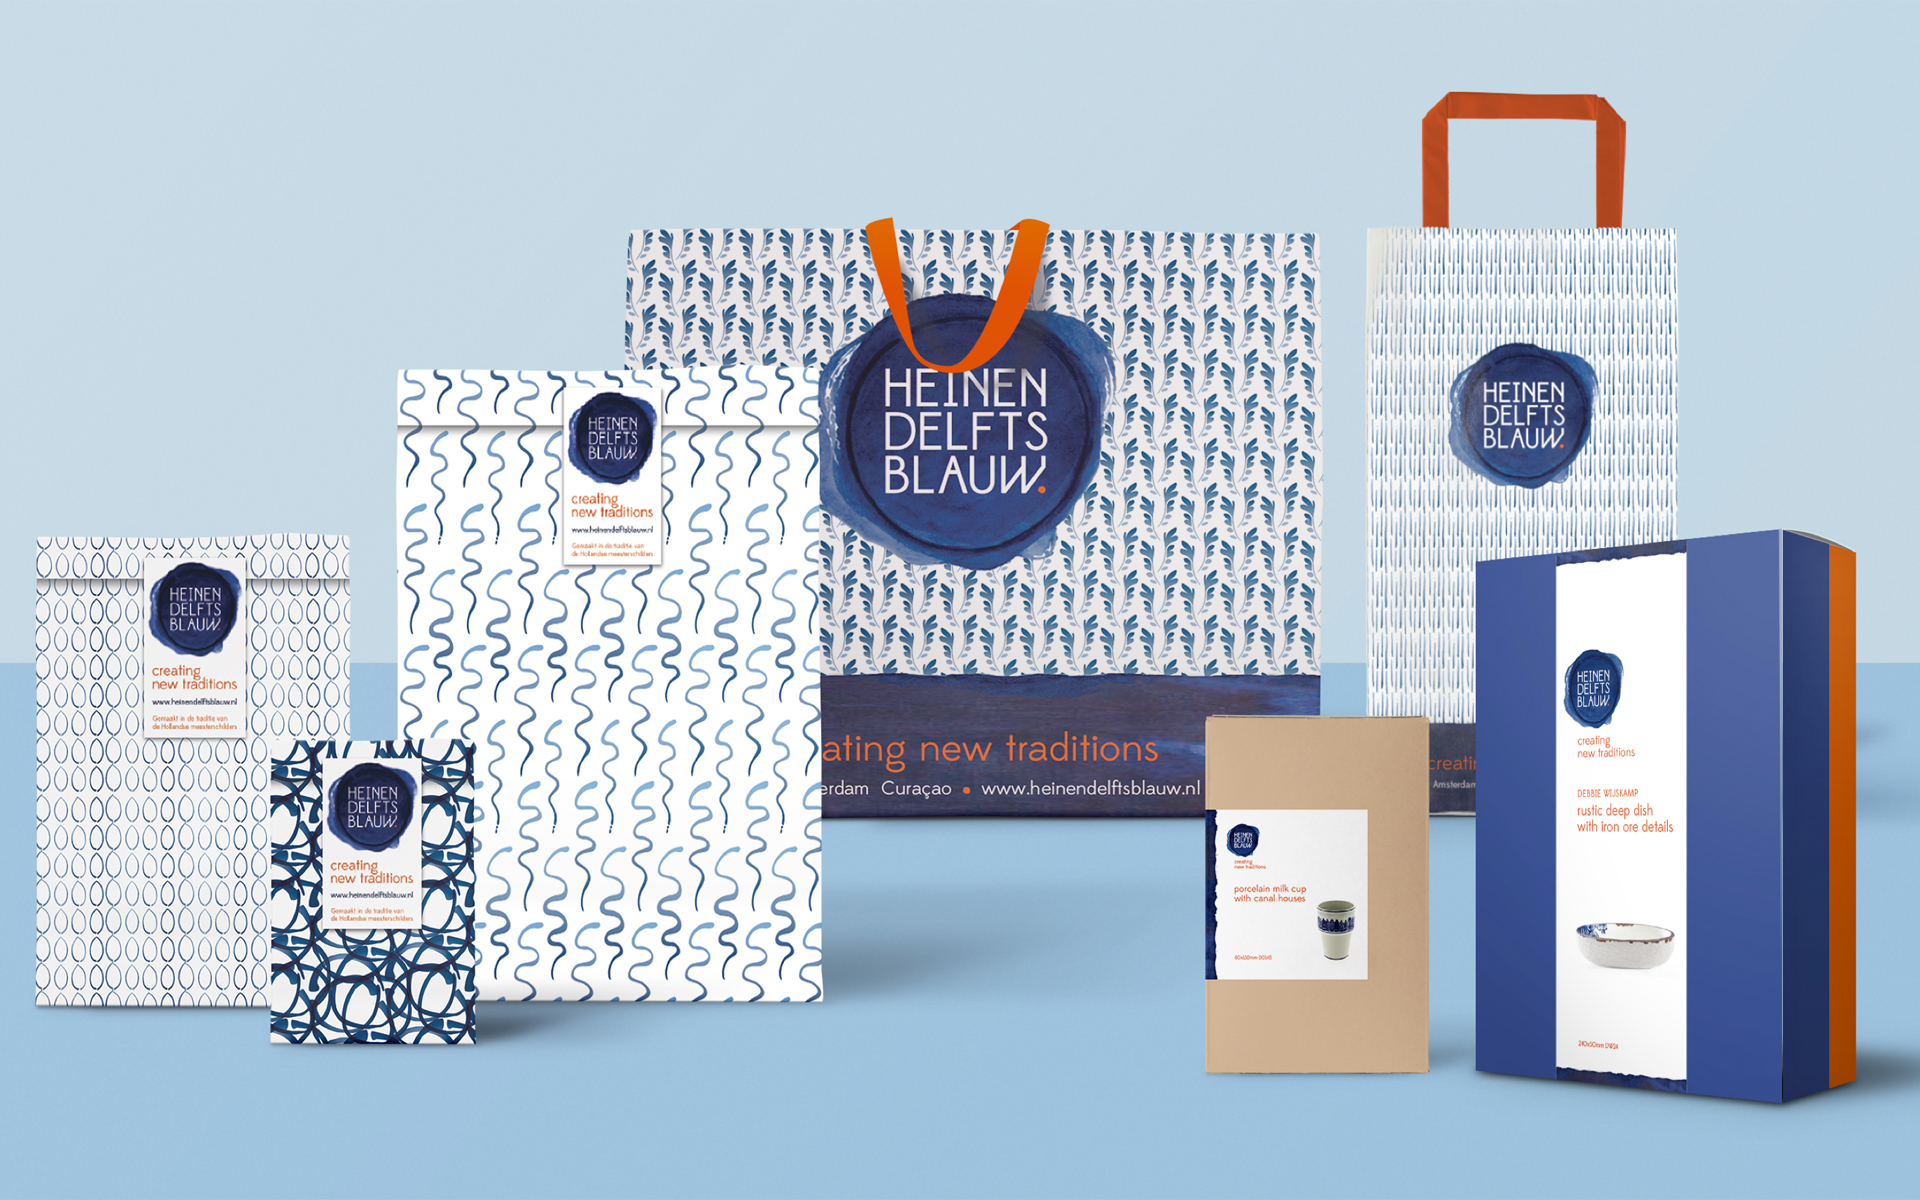 Heinen Delfts Blauw DAY Creative Brand Design Creating new traditions packaging